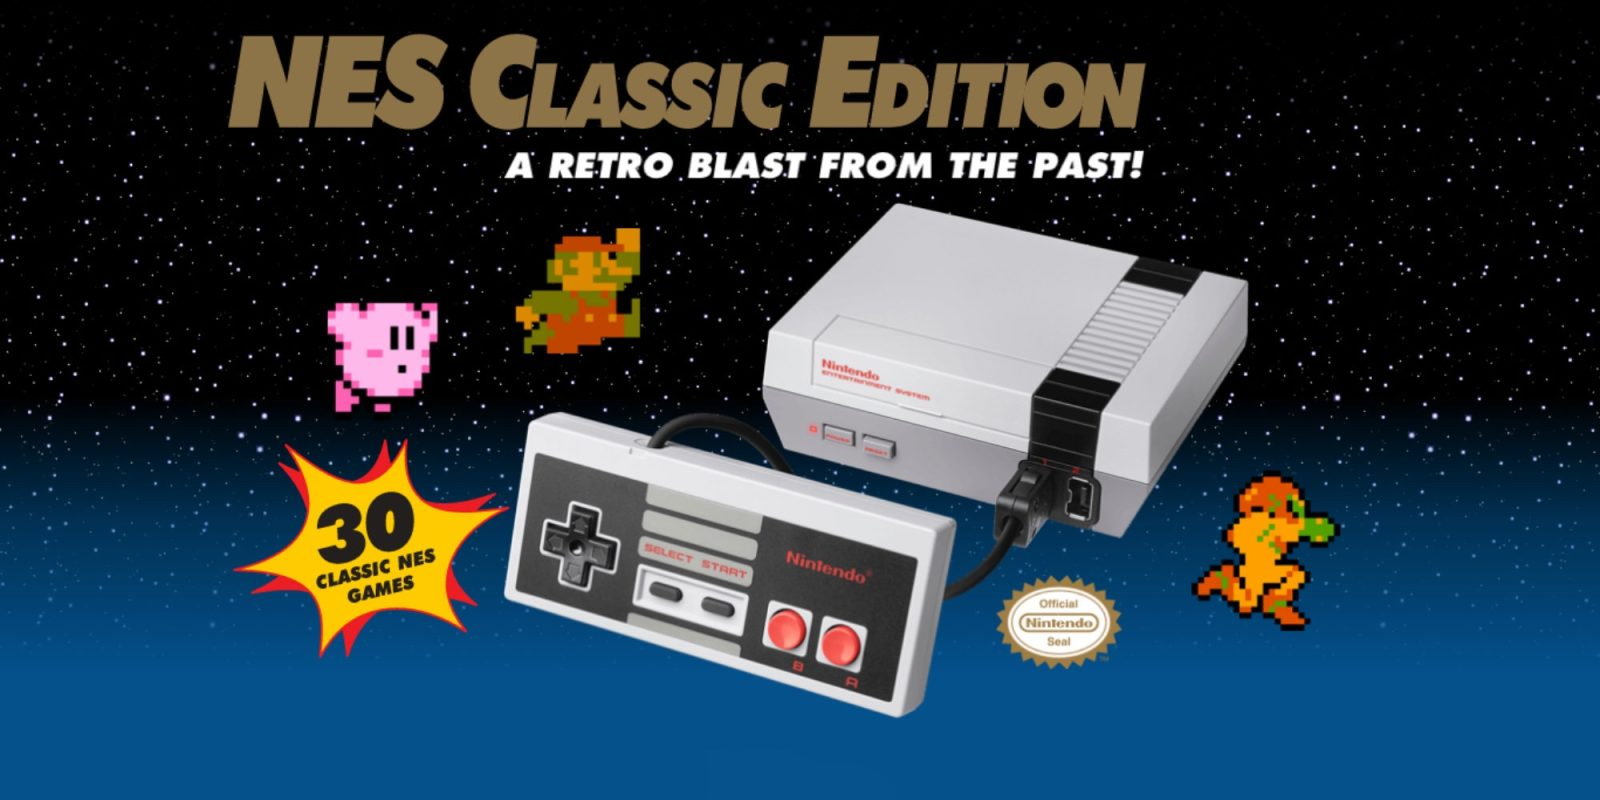 Play Zelda, Donkey Kong, Dr. Mario, and more w/ Nintendo's NES Classic: $50 (Refurb, Orig. $60)